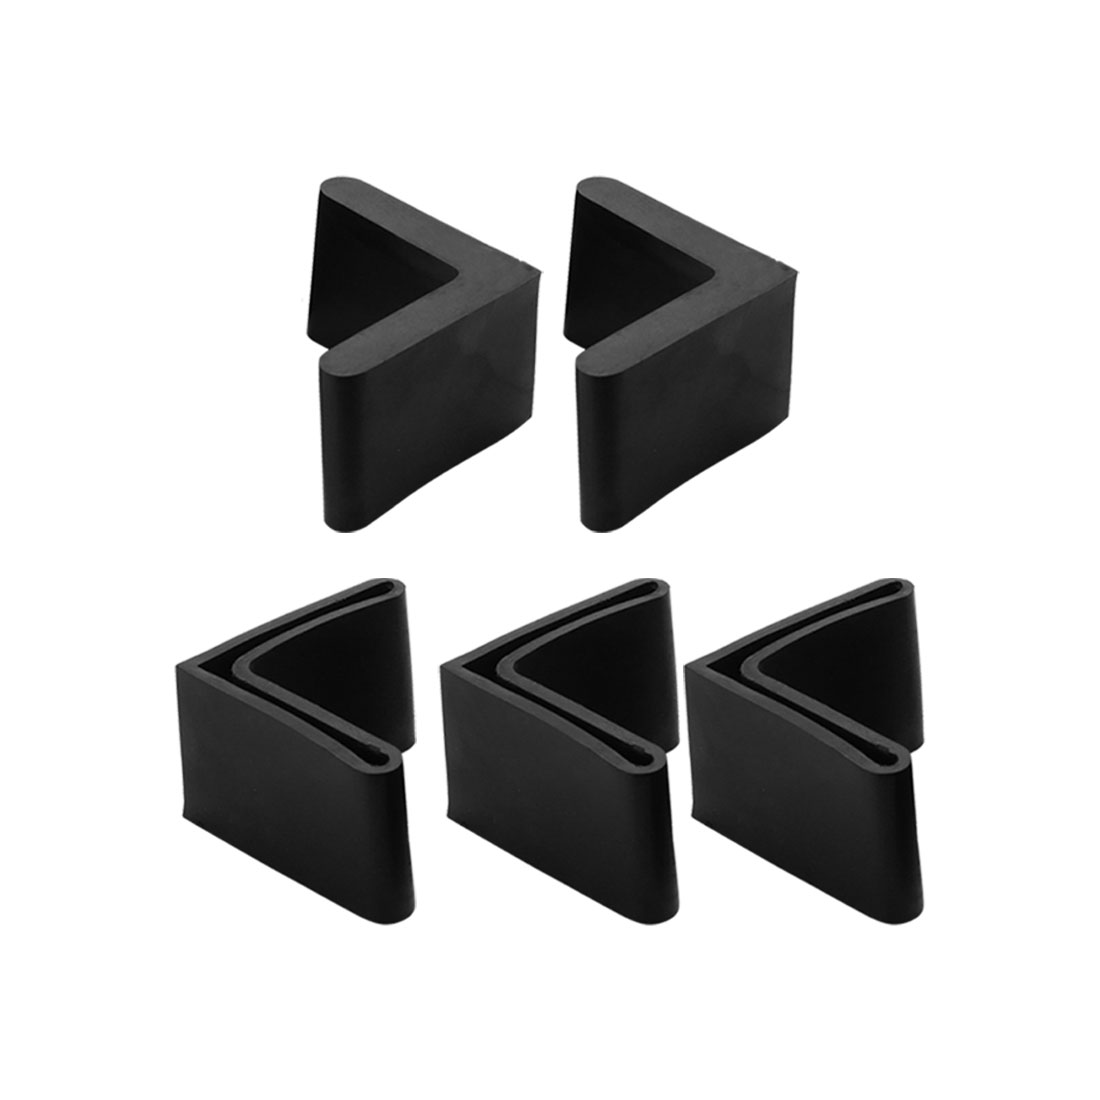 Rubber Triangle Furniture Leg Foot Protection Pad 40mmx40mm 5Pcs Black